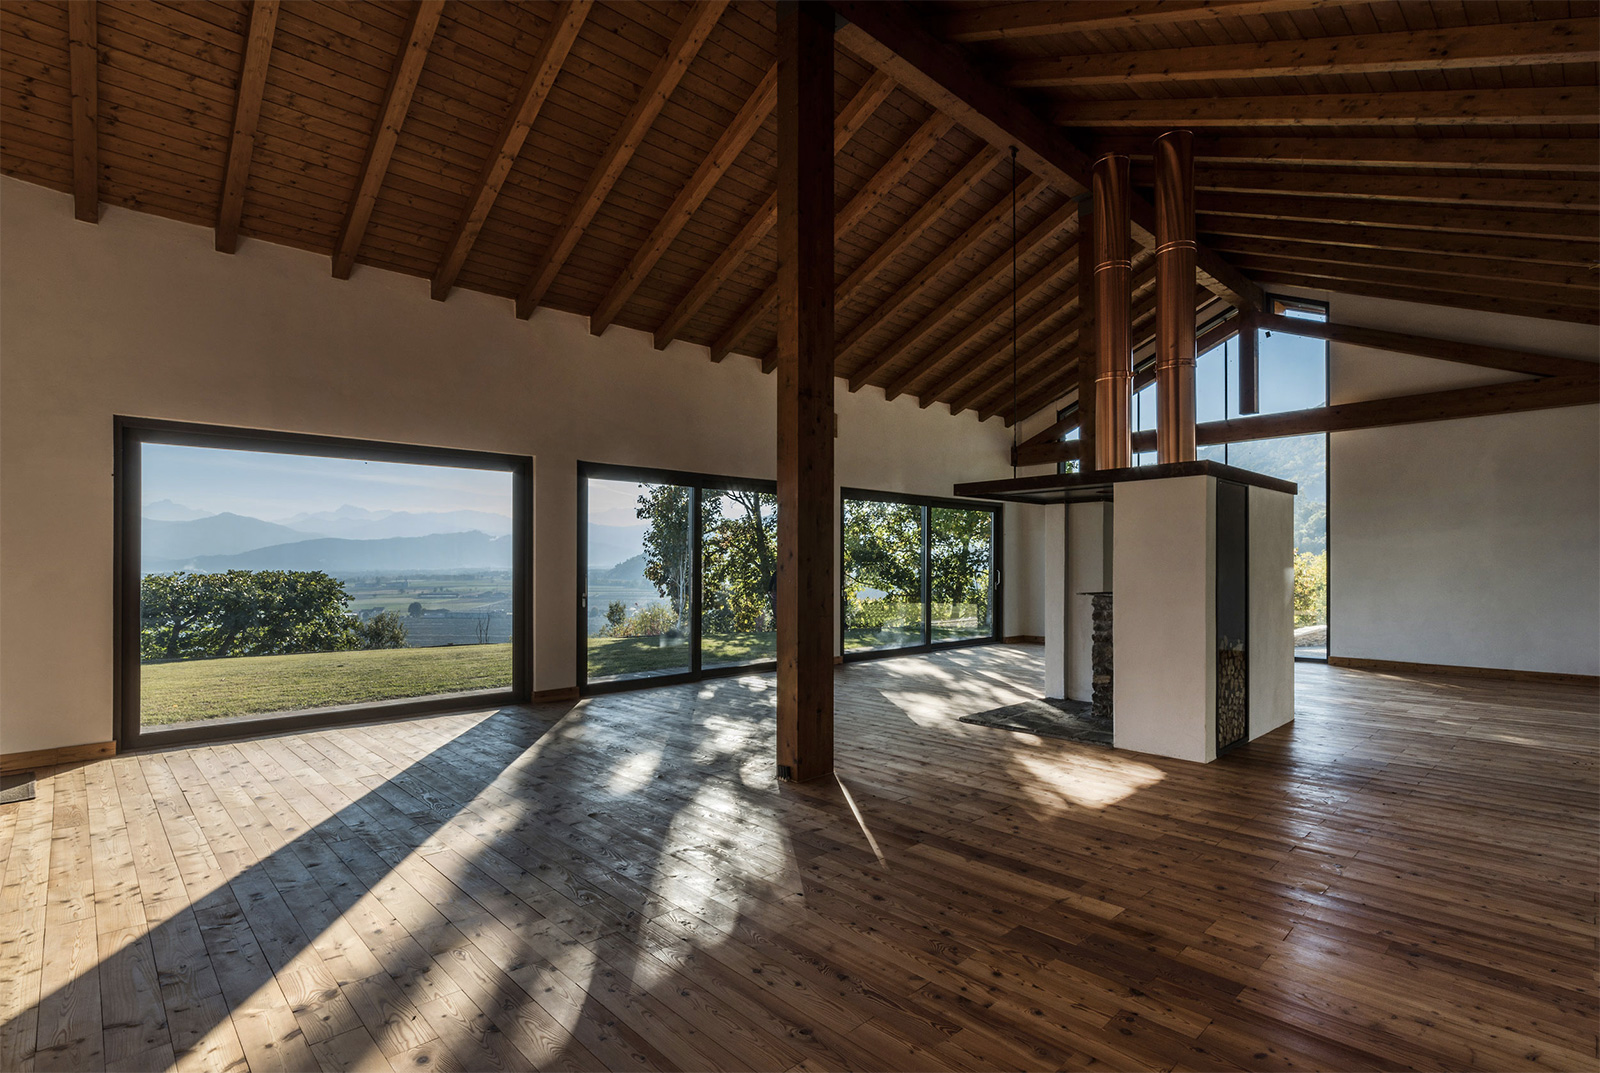 Villa con Vista: interiors feature timbed beamed ceilings, white walls and wooden floors